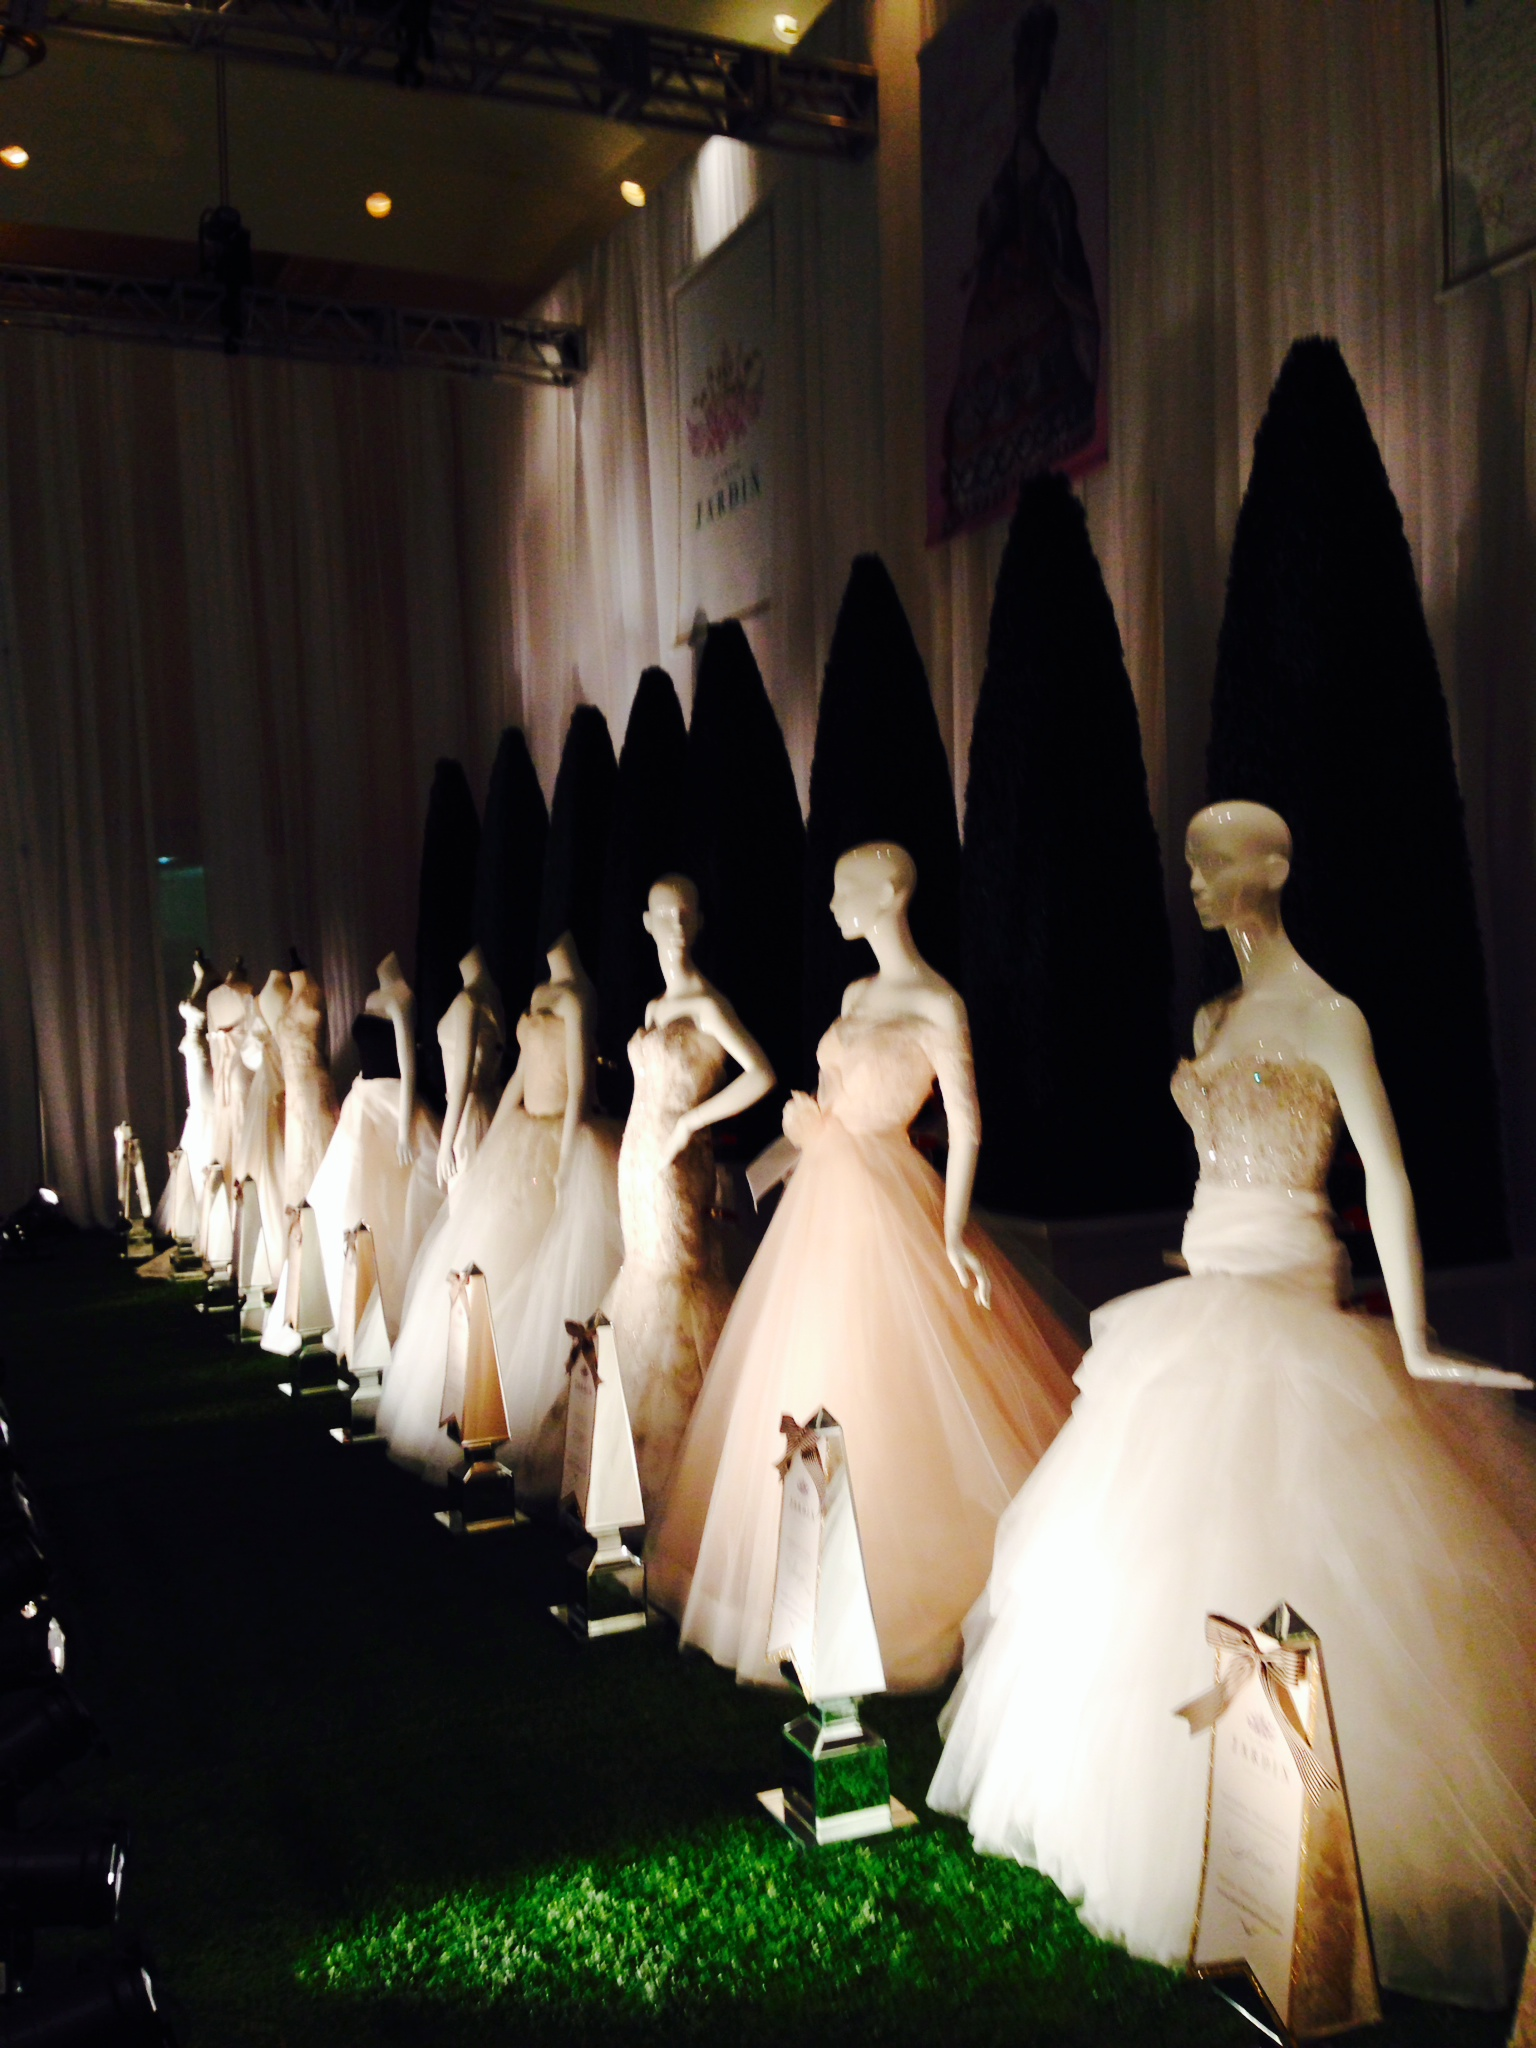 weddingdresses-wedluxeshow-torontoweddingplanner- torontodestionationweddingplanner